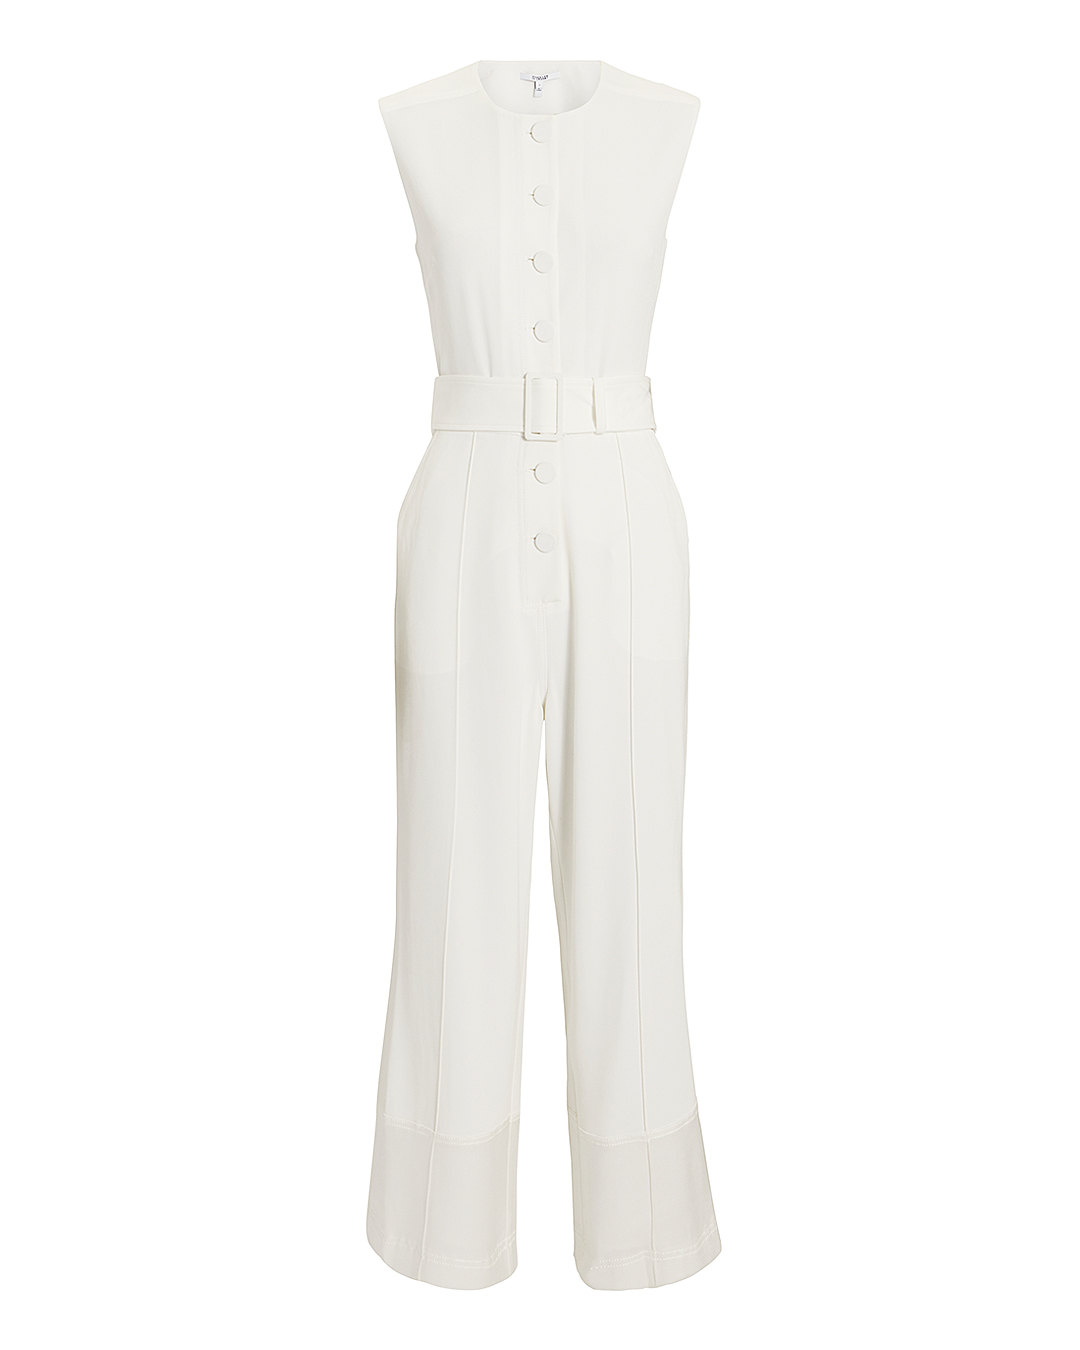 Derek Lam 10 Crosby White Crepe Jumpsuit White 4